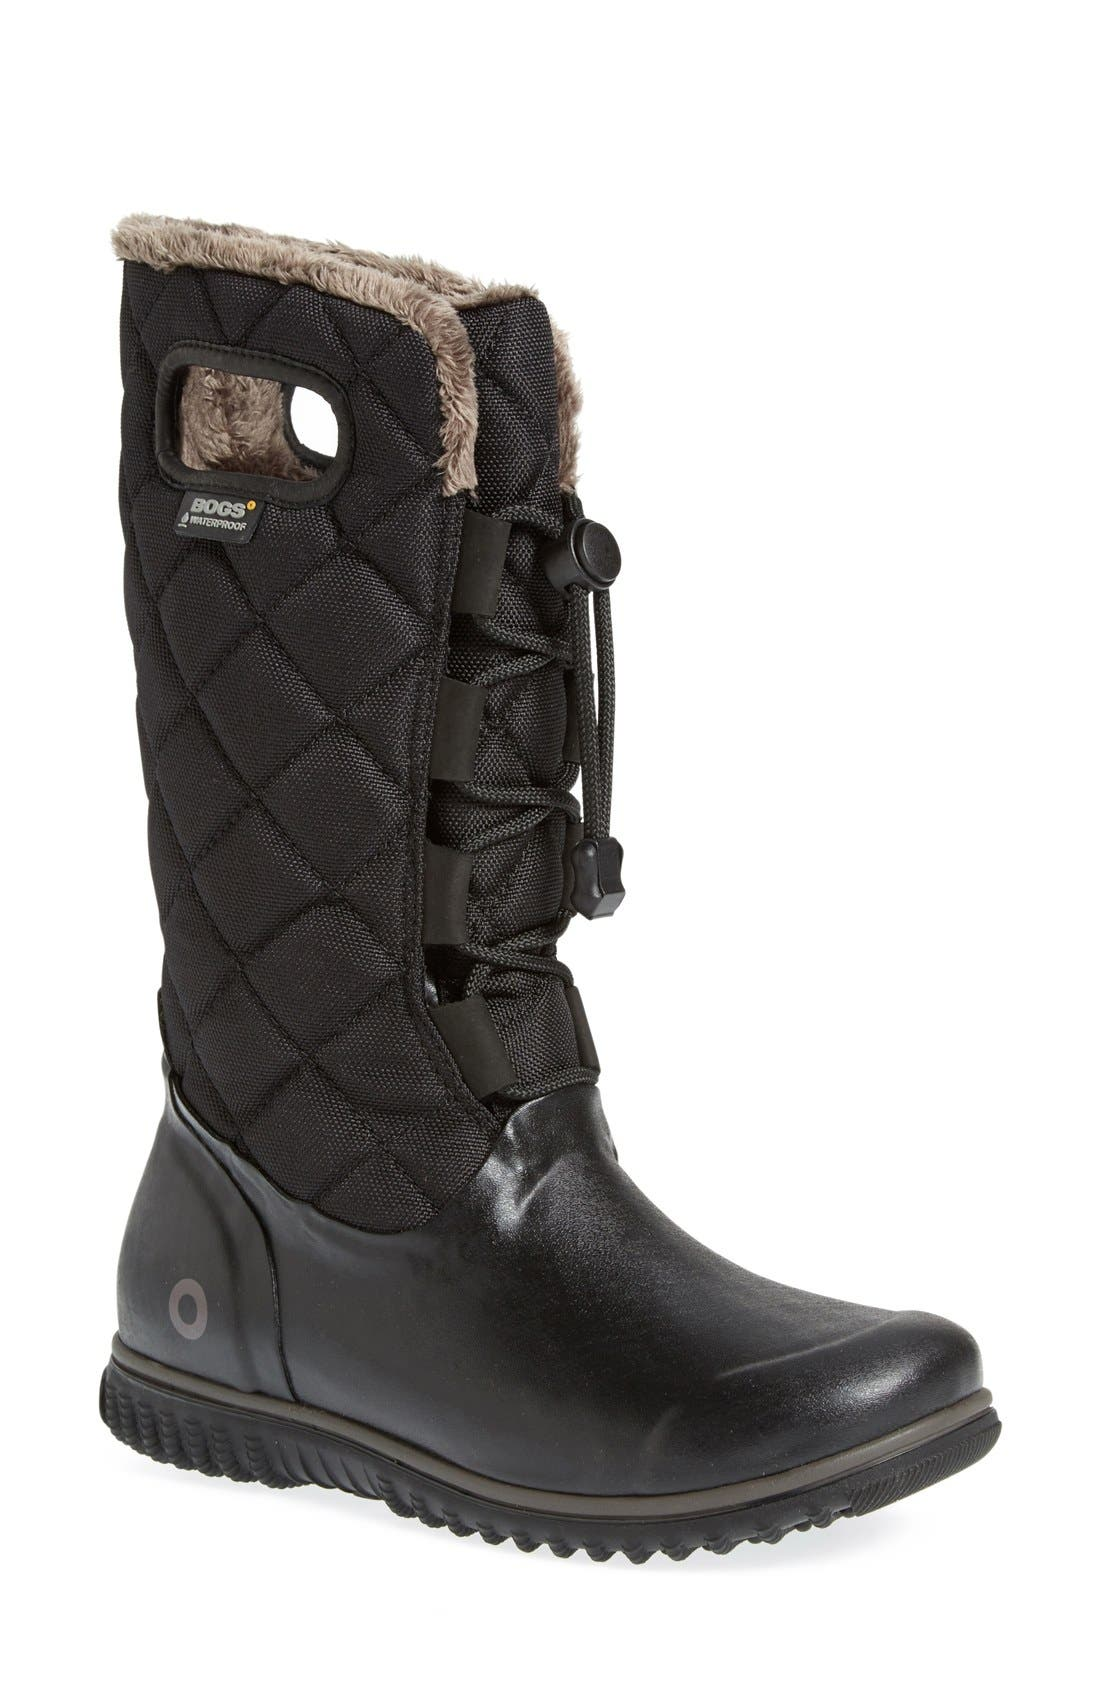 Main Image - Bogs 'June' Lace High Waterproof Quilted Boot (Women)